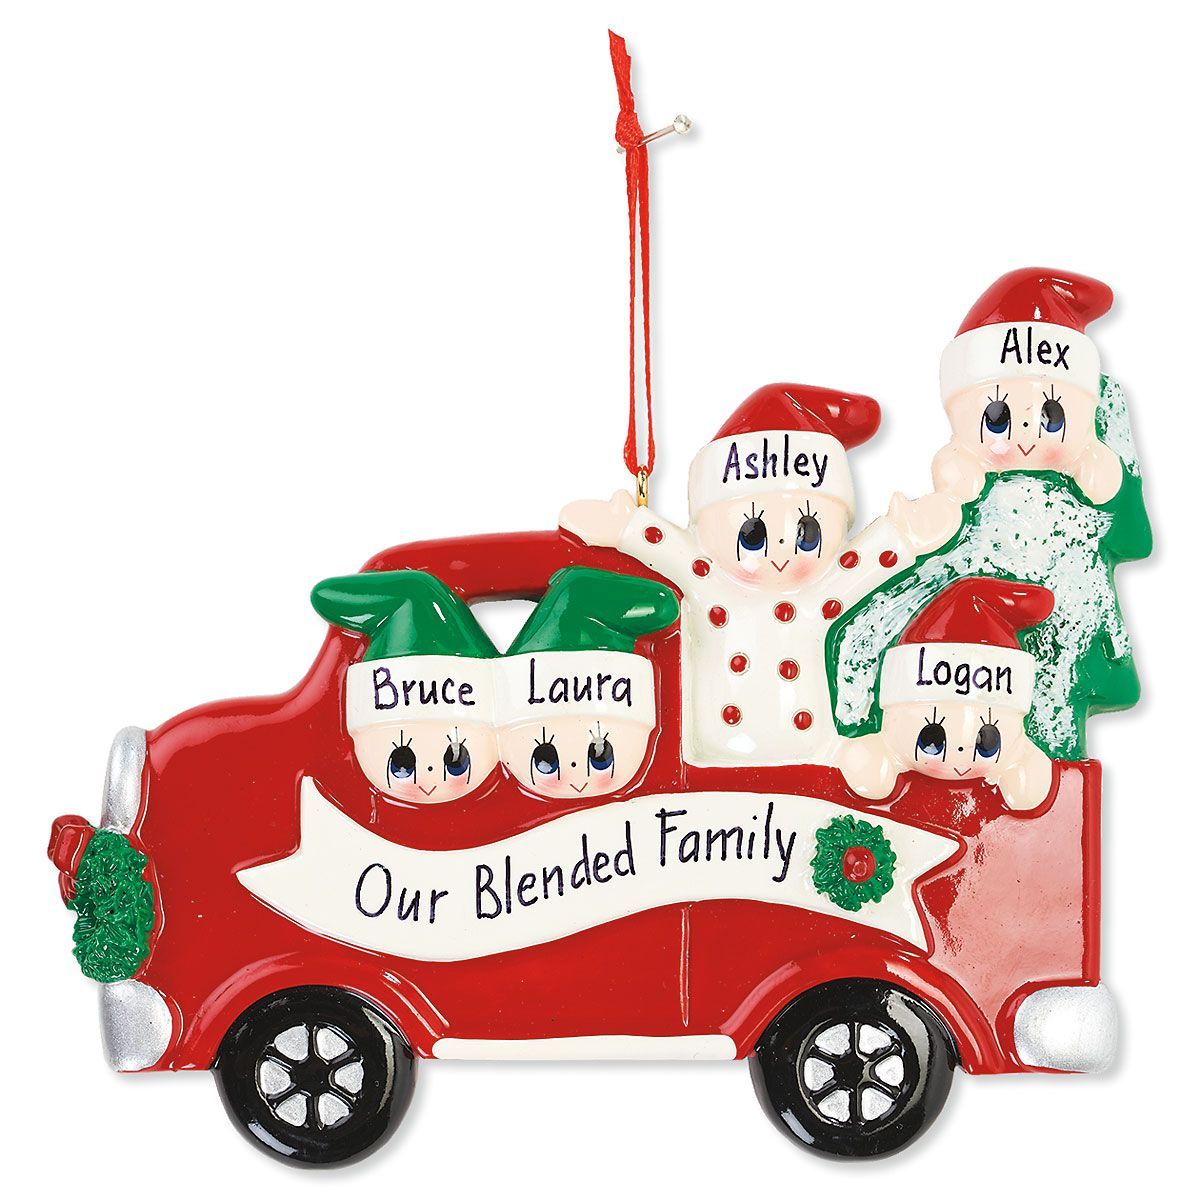 5 Names Red Truck With Christmas Tree Ornament Lillian Vernon